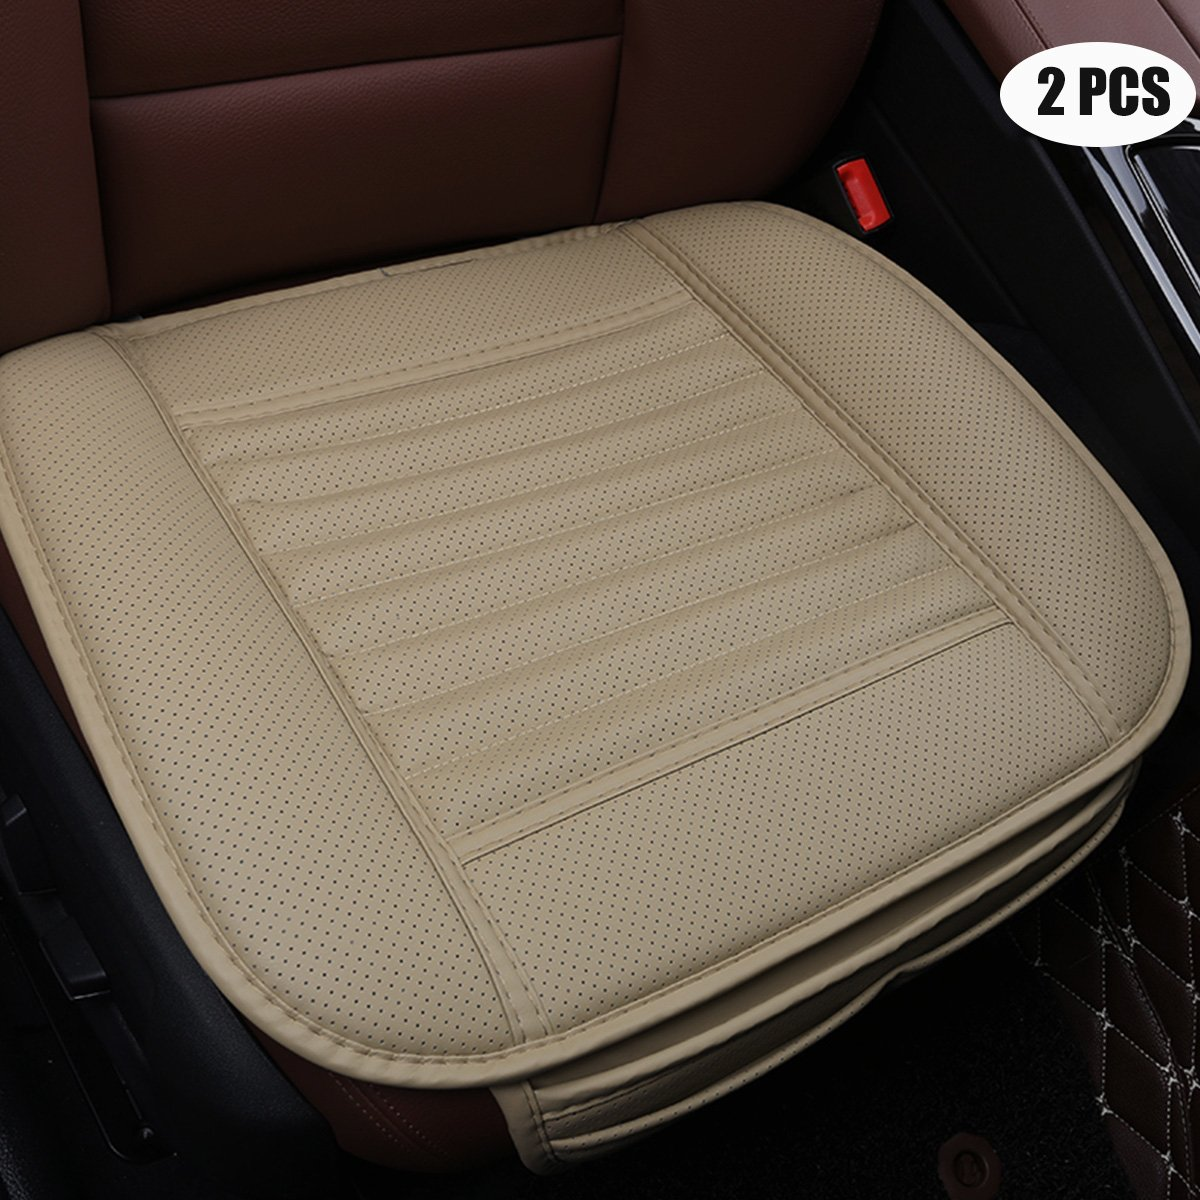 EDEALYN Four Seasons General PU Leather Comfortable Car Interior Seat Cushion Cover Pad Mat for Auto Car Supplies Office Chair,2 PCS (Beige)